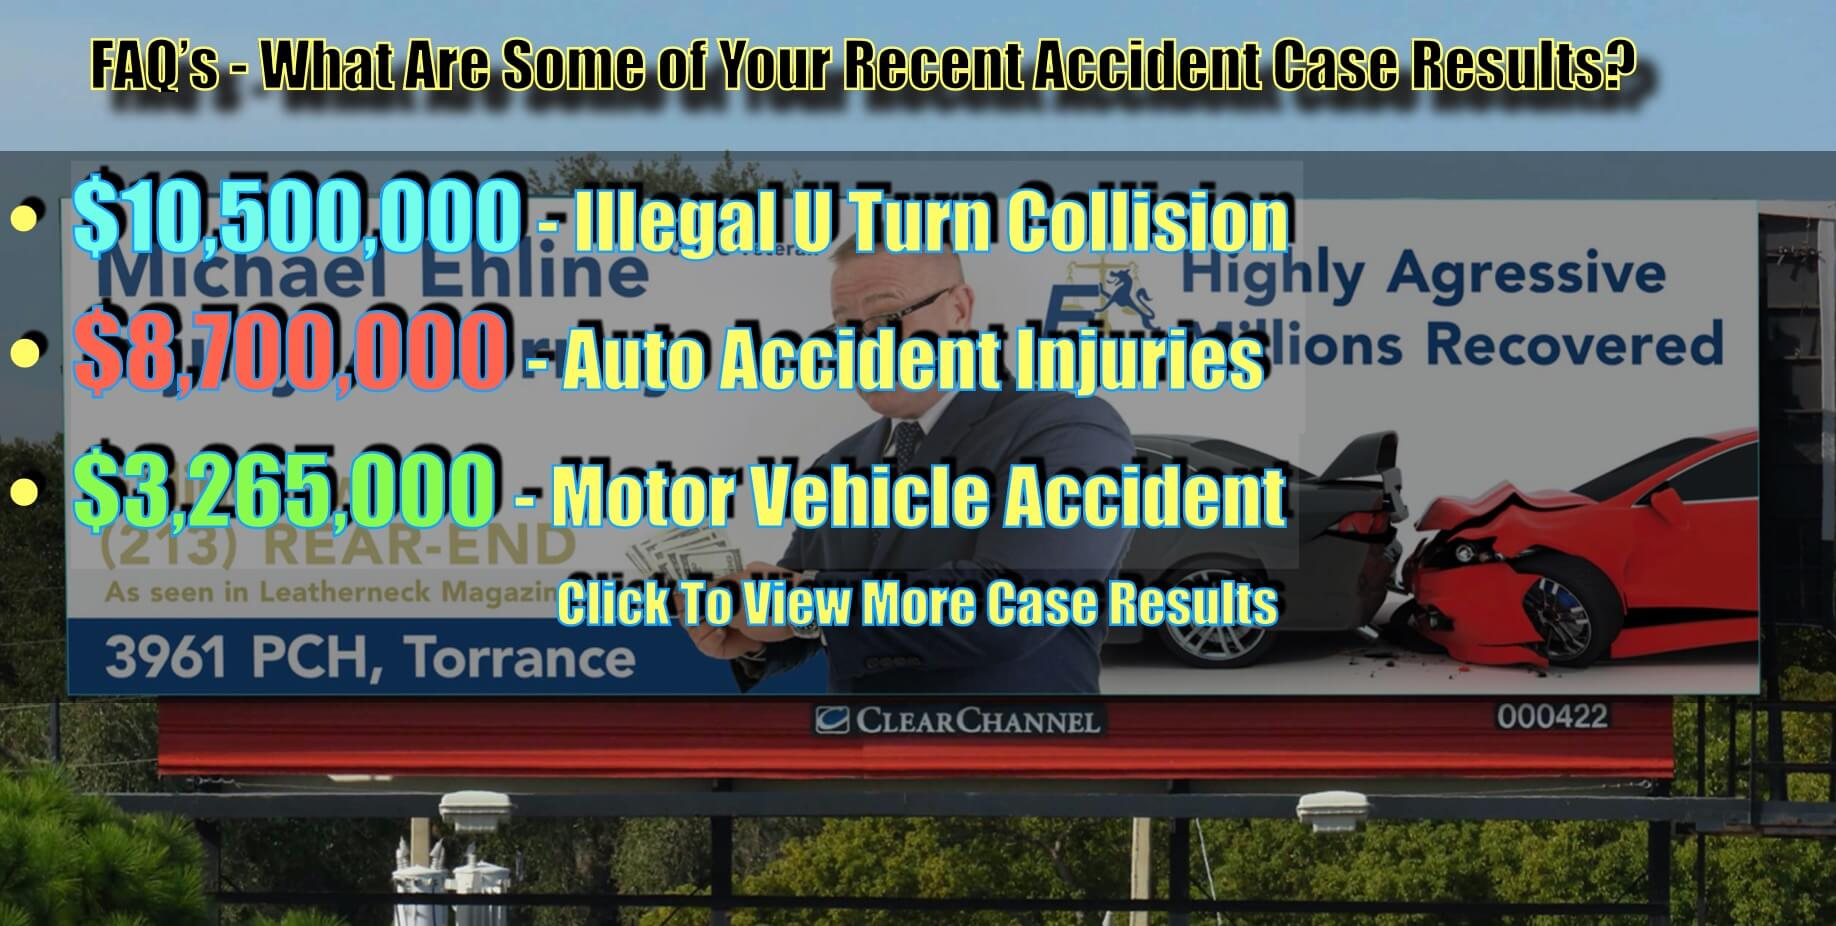 View our recent big money outcomes in addition to $10,500,000. $8,700,000. Accident With Severe Spinal Cord Injuries / Required Surgery. $4,886,255.67. $4,200,000. Truck Accident Wrongful Death Crash / Insurance Bad Faith Matter, $3,265,000, Altamirano v. Harrison, Motor Vehicle: Motorcycle. $2,300,000 Gilbert v. Quinones, Car Accident, Motor Vehicle Accident, Personal Injury.